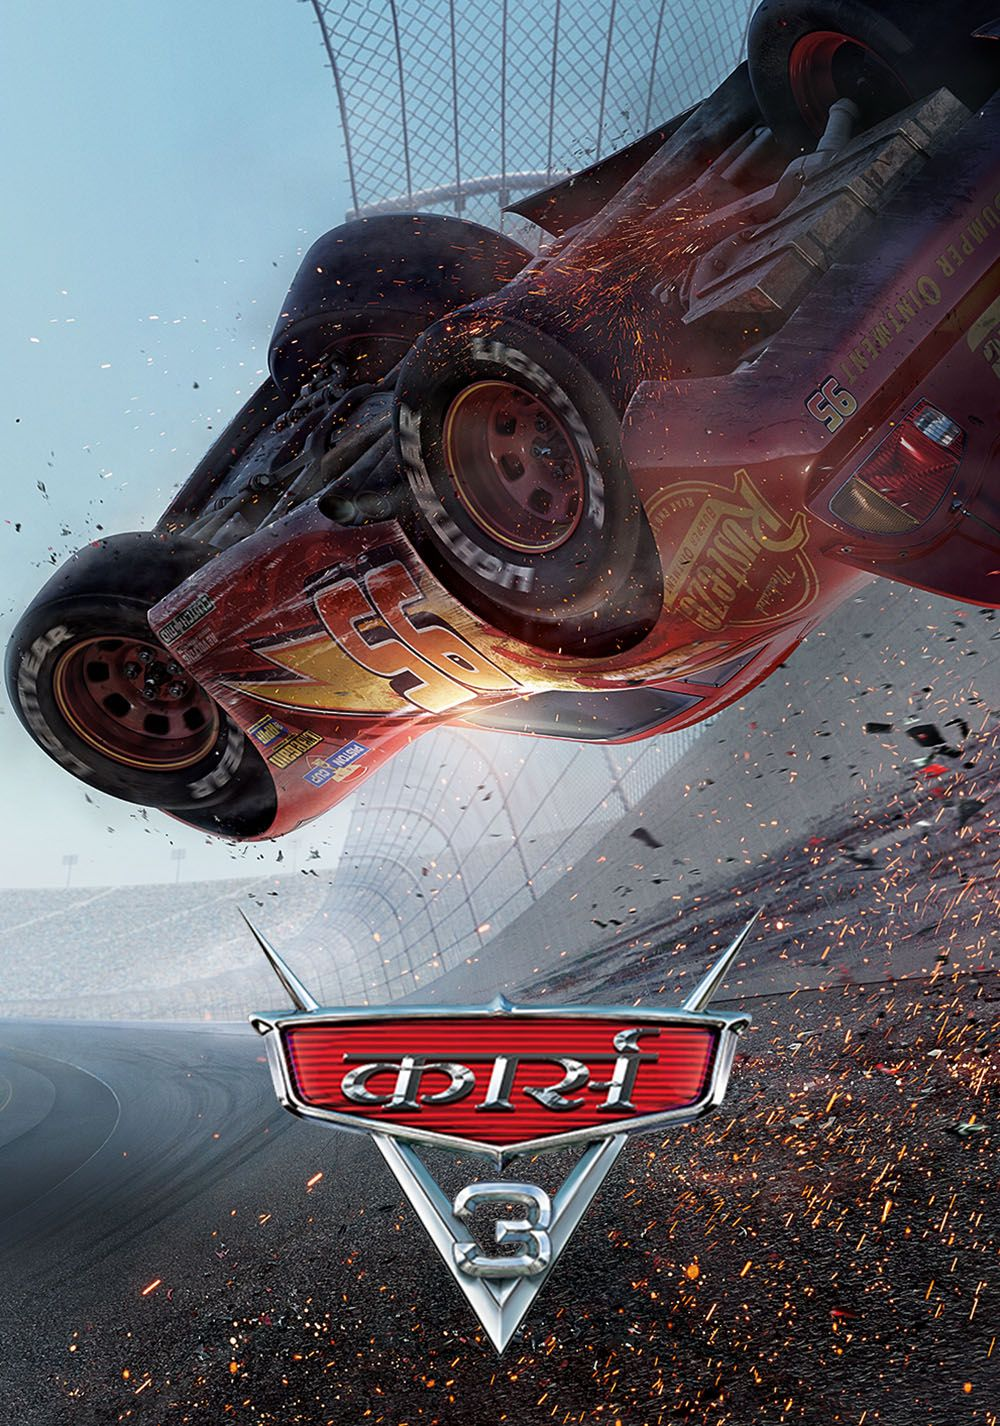 [Trailer] Sideshow Performers Strike Back in Halloween-Set ... |Cars Movie Poster Free Candy